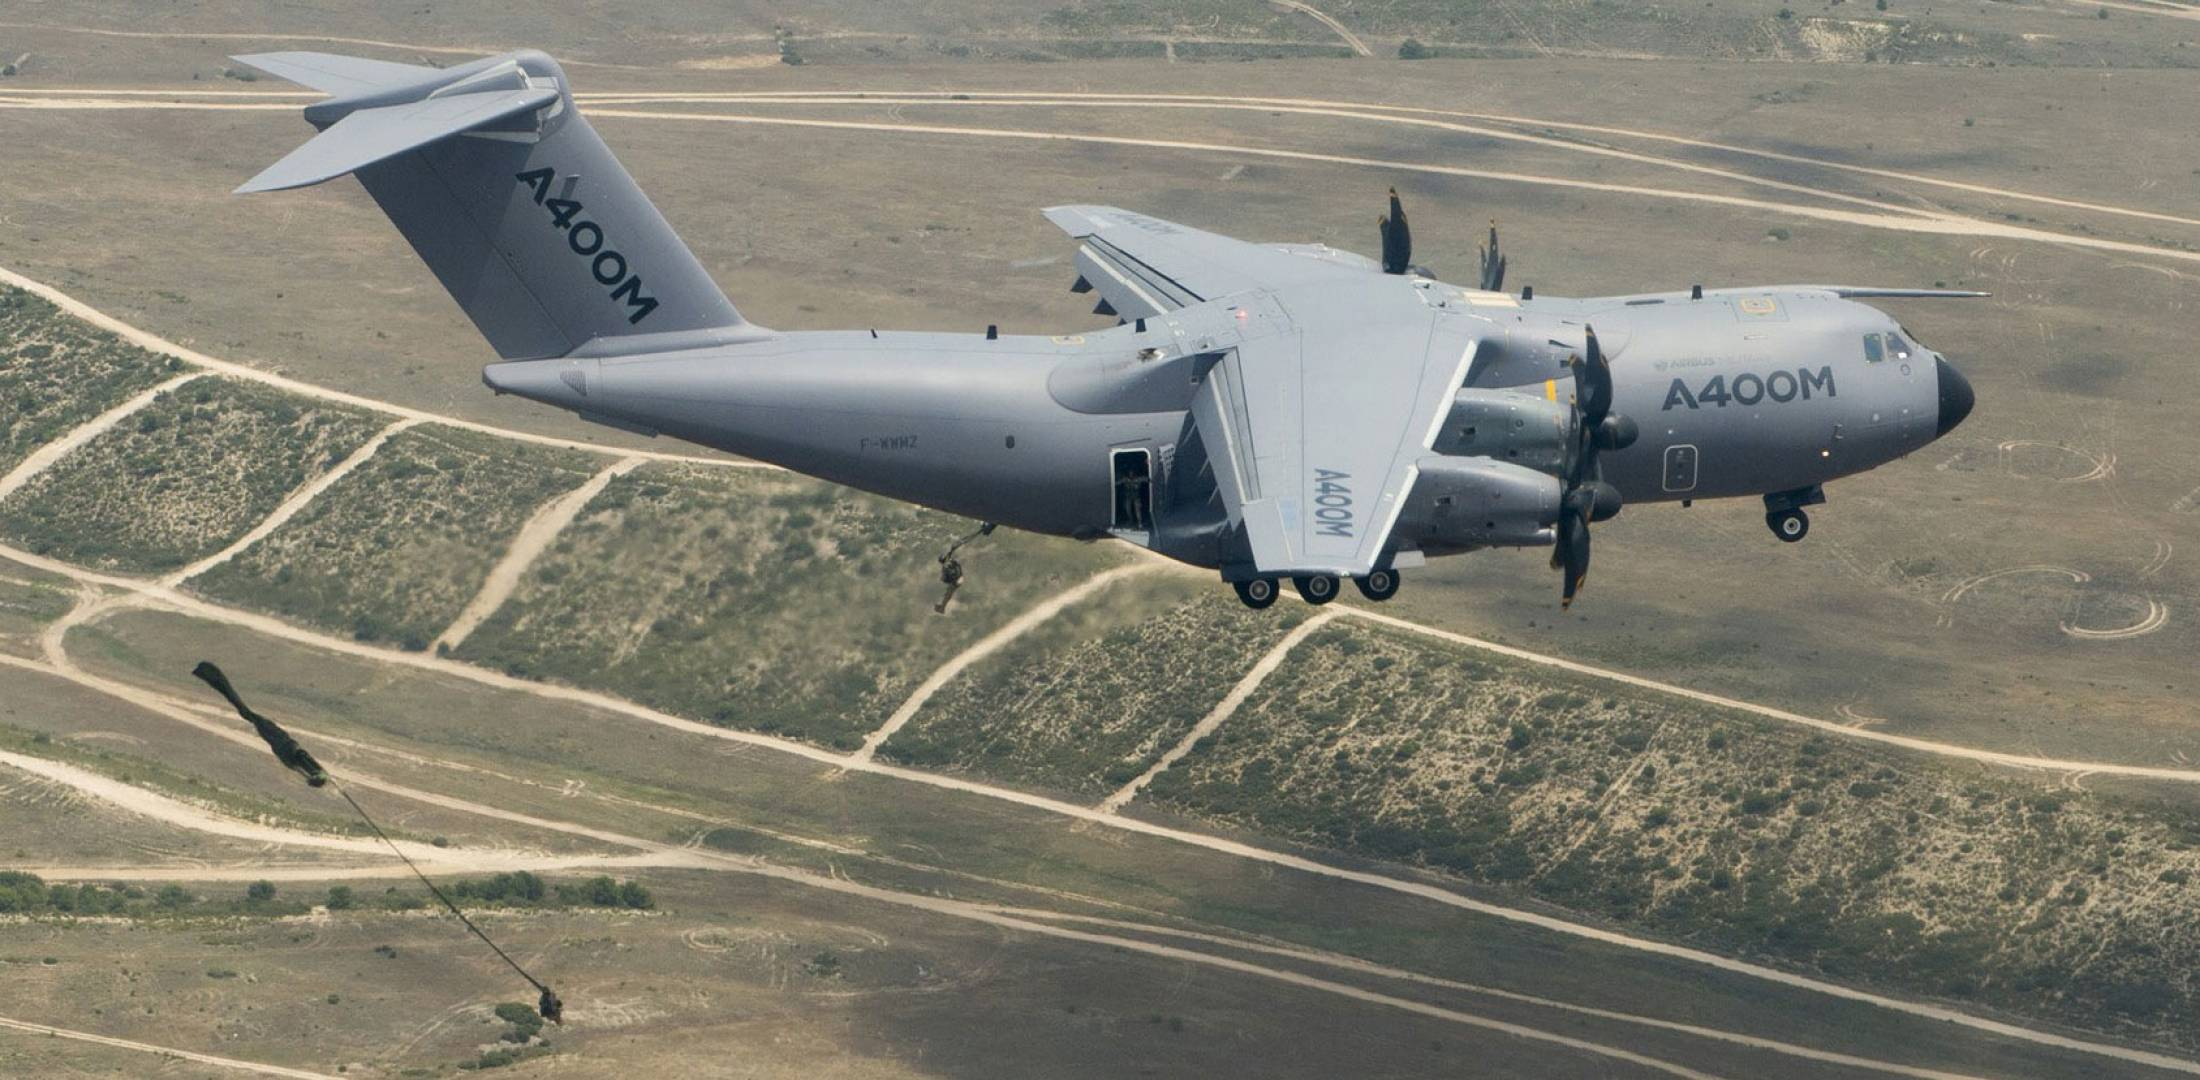 A400M used in paratroop dropping